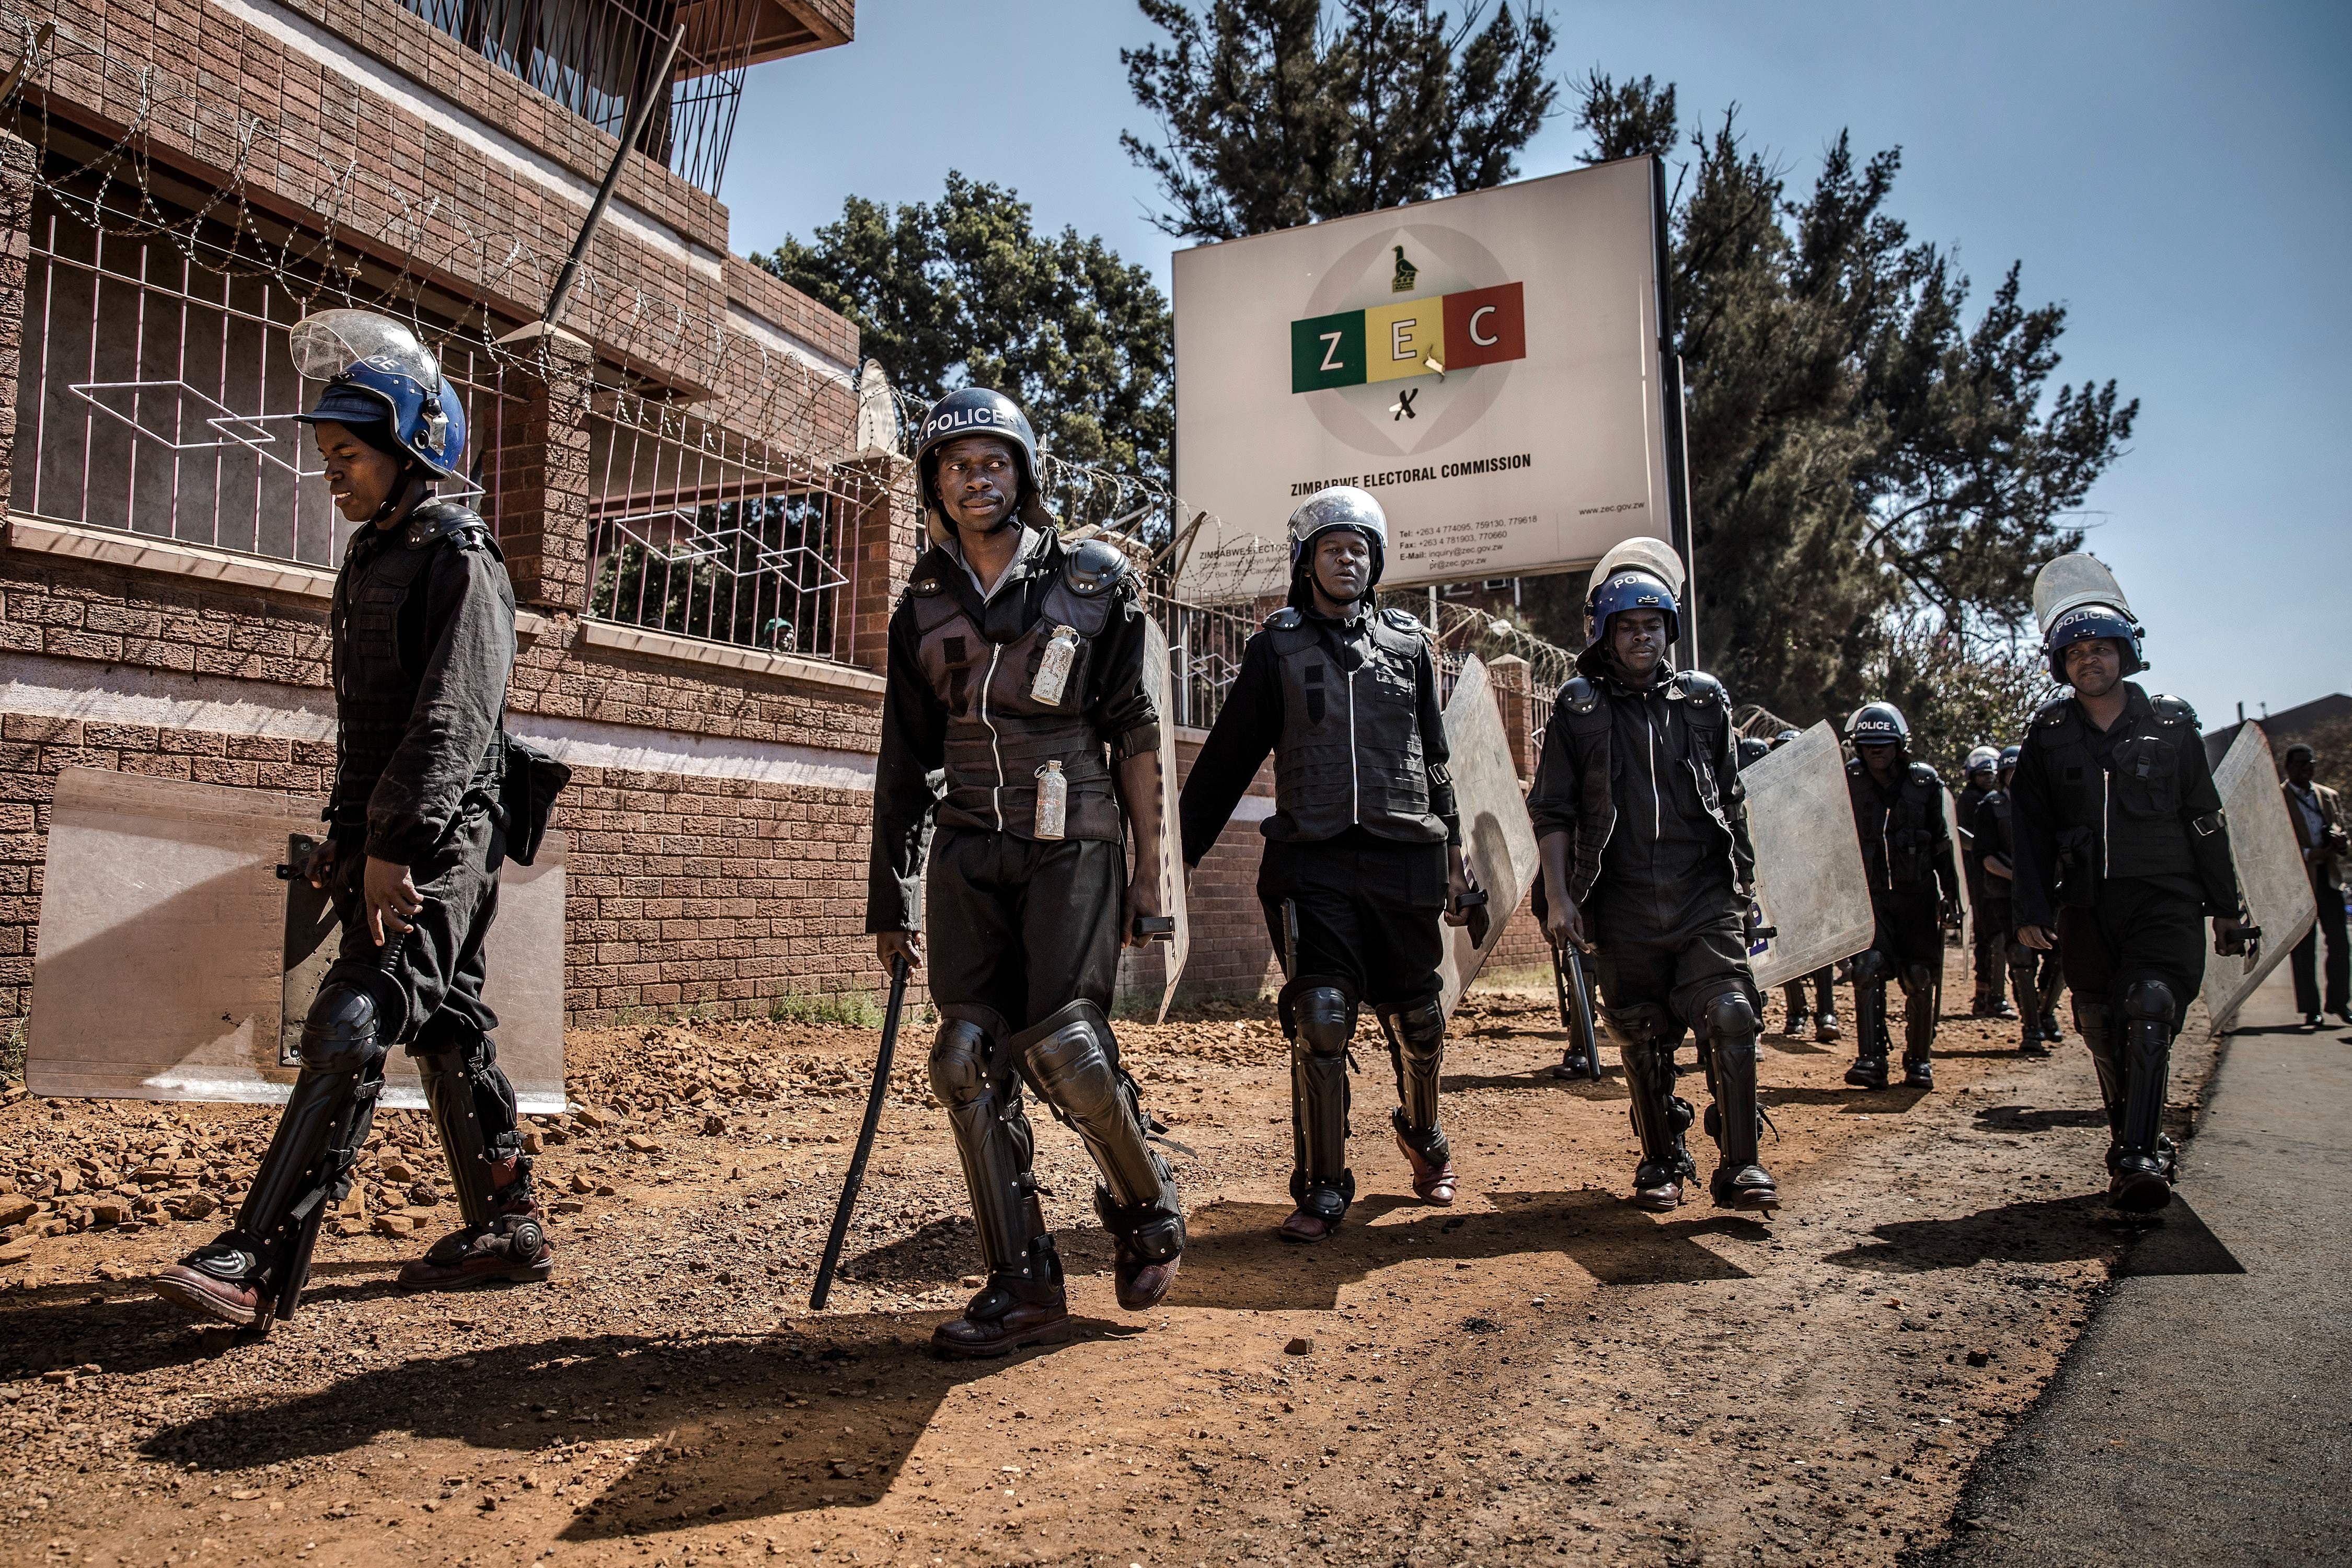 """Zimbabwean anti riot police officers stand guard at the entrance of the Zimbabwe Electoral Commission (ZEC) headquarters in Harare on August 1, 2018, as supporters of the opposition party Movement for Democratic Change (MDC) protest against alleged widespread fraud by the election authority and ruling party, after the announcement of the election's results. - Zimbabwe's ruling ZANU-PF party won the most seats in parliament, official results showed on August 1, 2018, but EU observers criticised the Zimbabwe elections for being held on an """"un-level playing field"""". (Photo by Luis TATO / AFP) (Photo credit should read LUIS TATO/AFP/Getty Images)"""